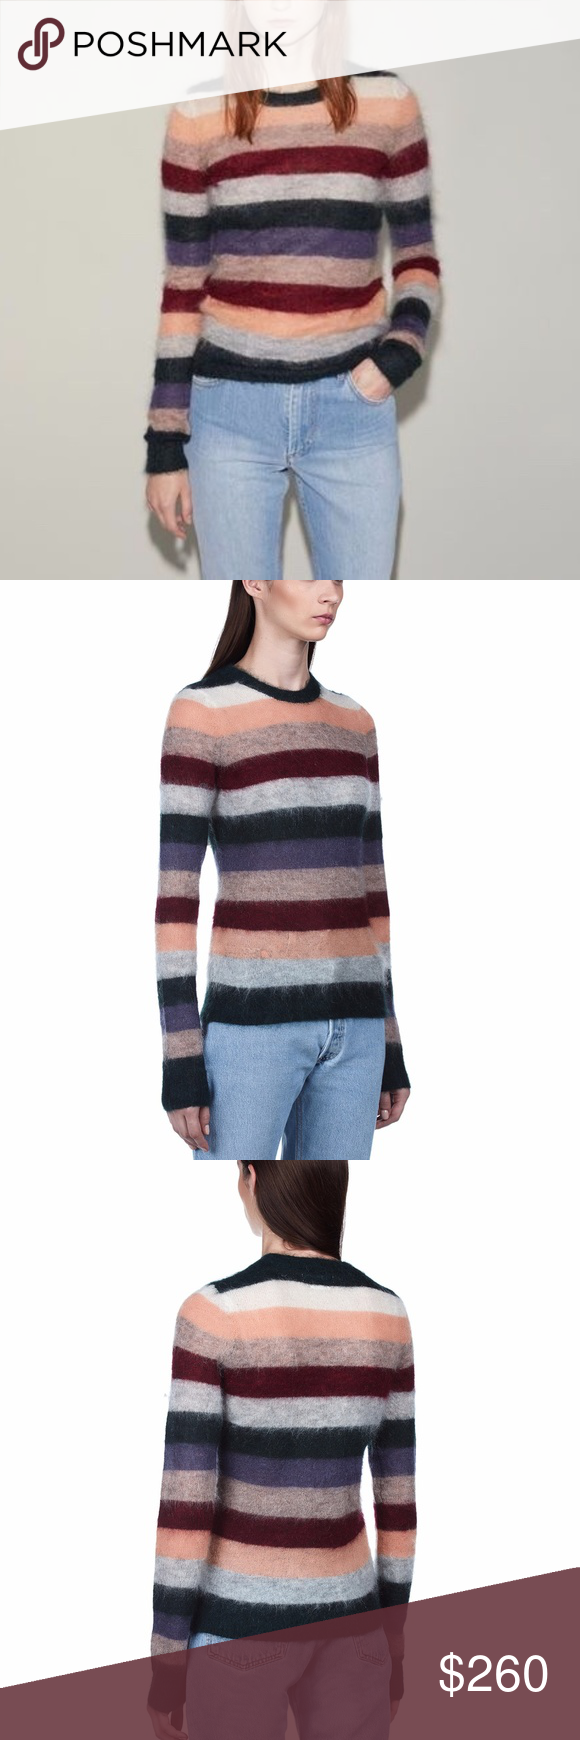 0d8e77adf38 Isabel Marant Étoile Cassy striped sweater Isabel Marant Étoile Cassy  beautiful multicolored striped mohair-blend